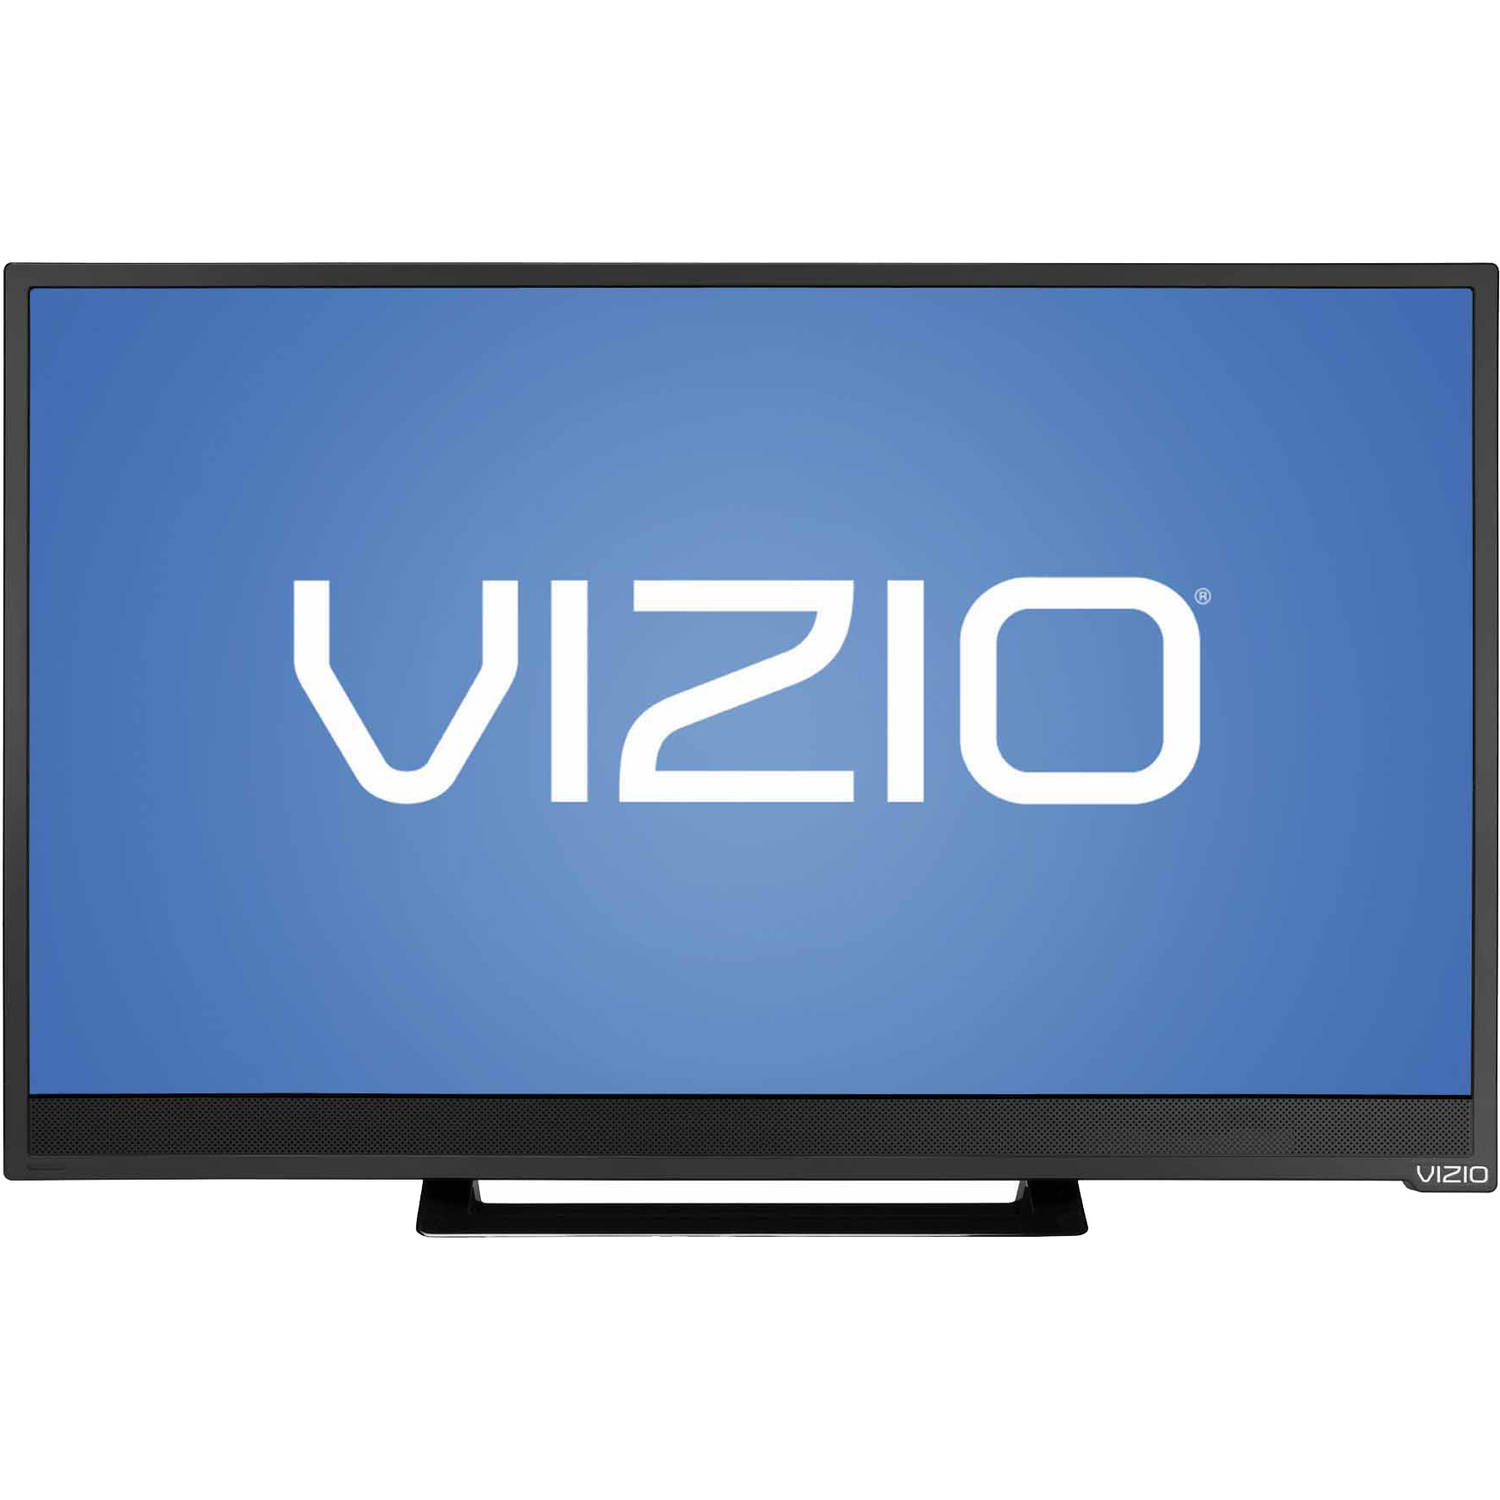 "Refurbished VIZIO E28H-C1 28"" Class 720p 60Hz Full-Array LED Smart TV"